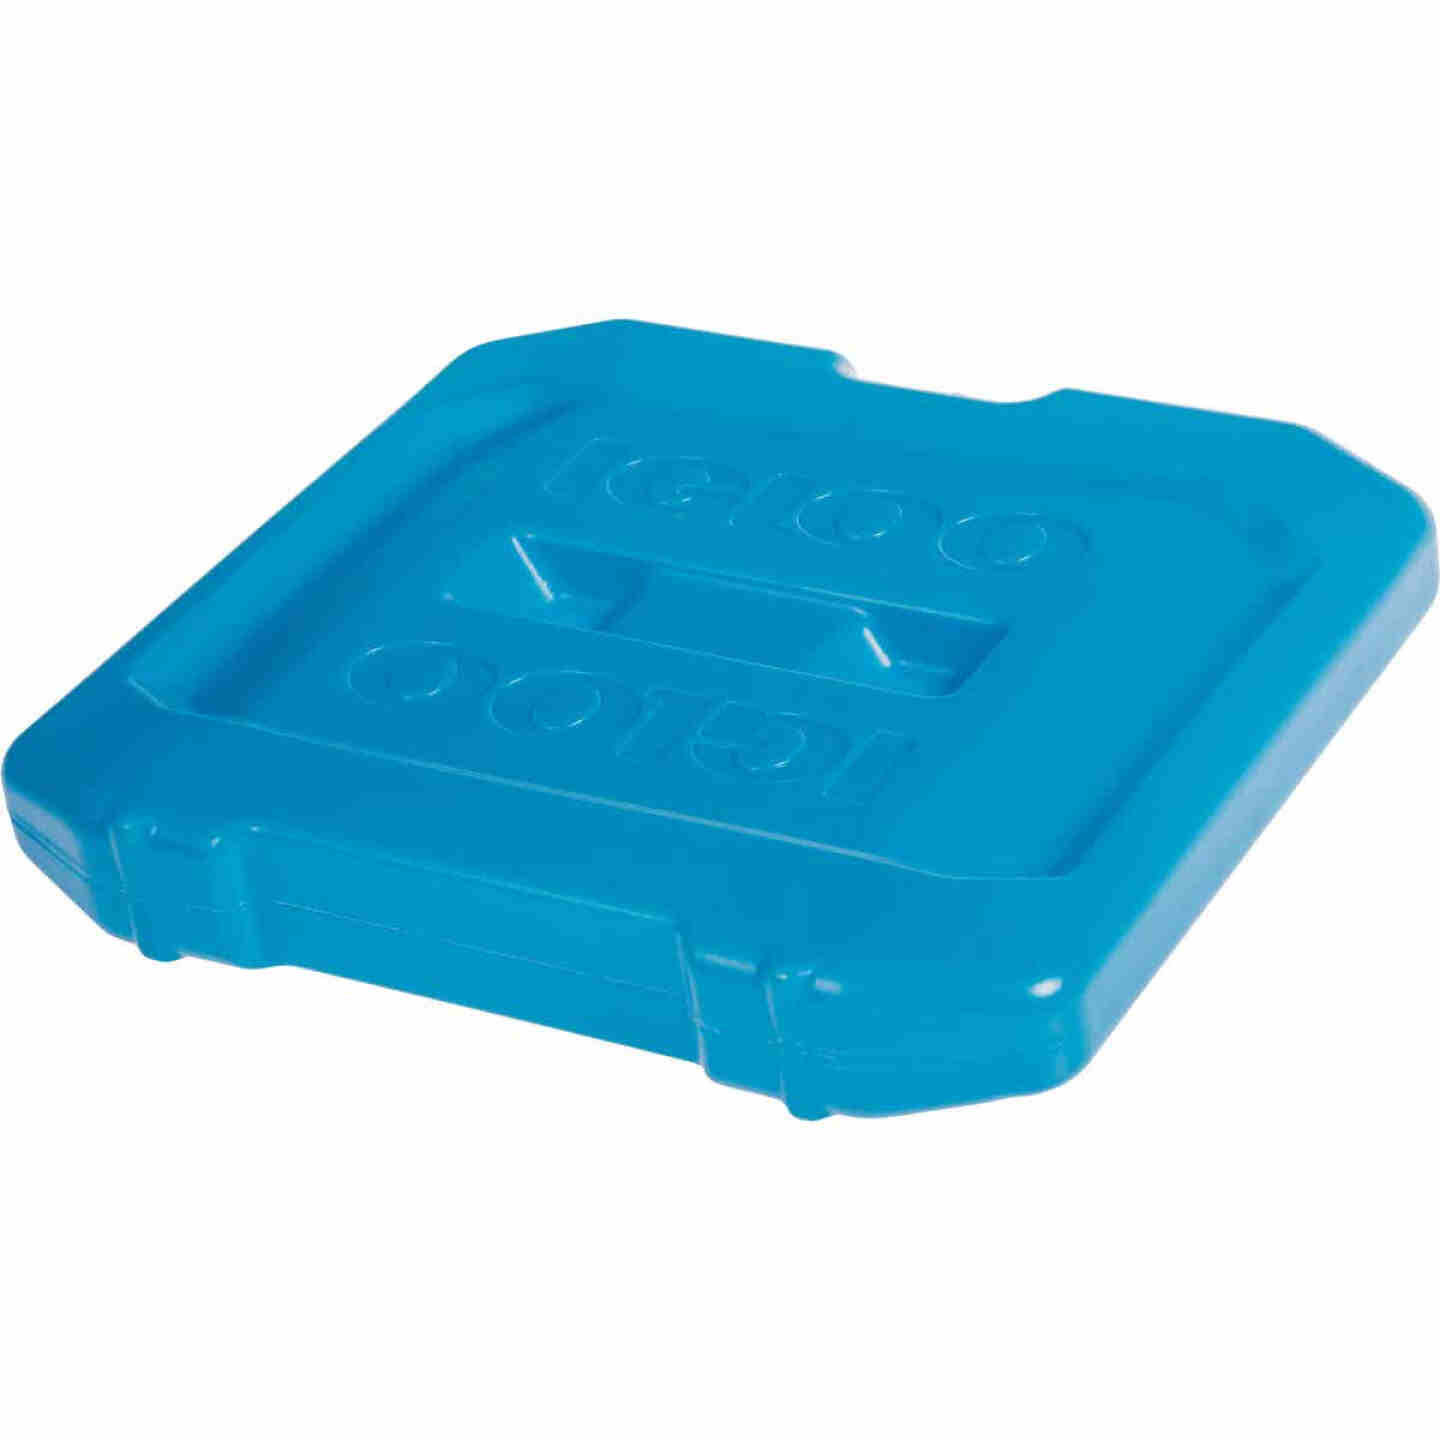 Igloo Maxcold 5 Lb. Extra Large Cooler Ice Pack Image 3